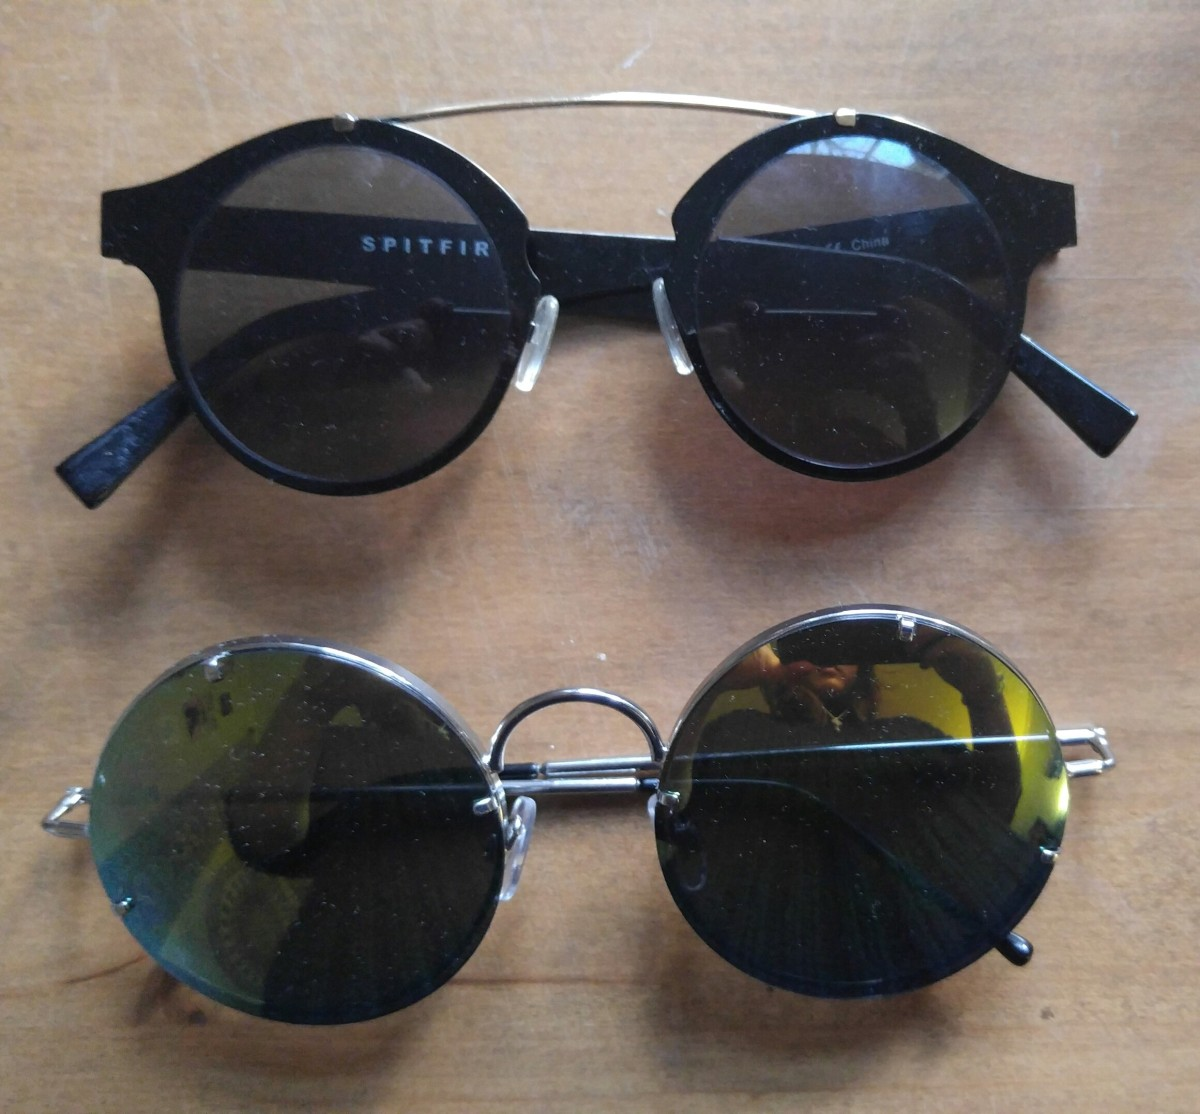 Spitfire Sunglasses Review